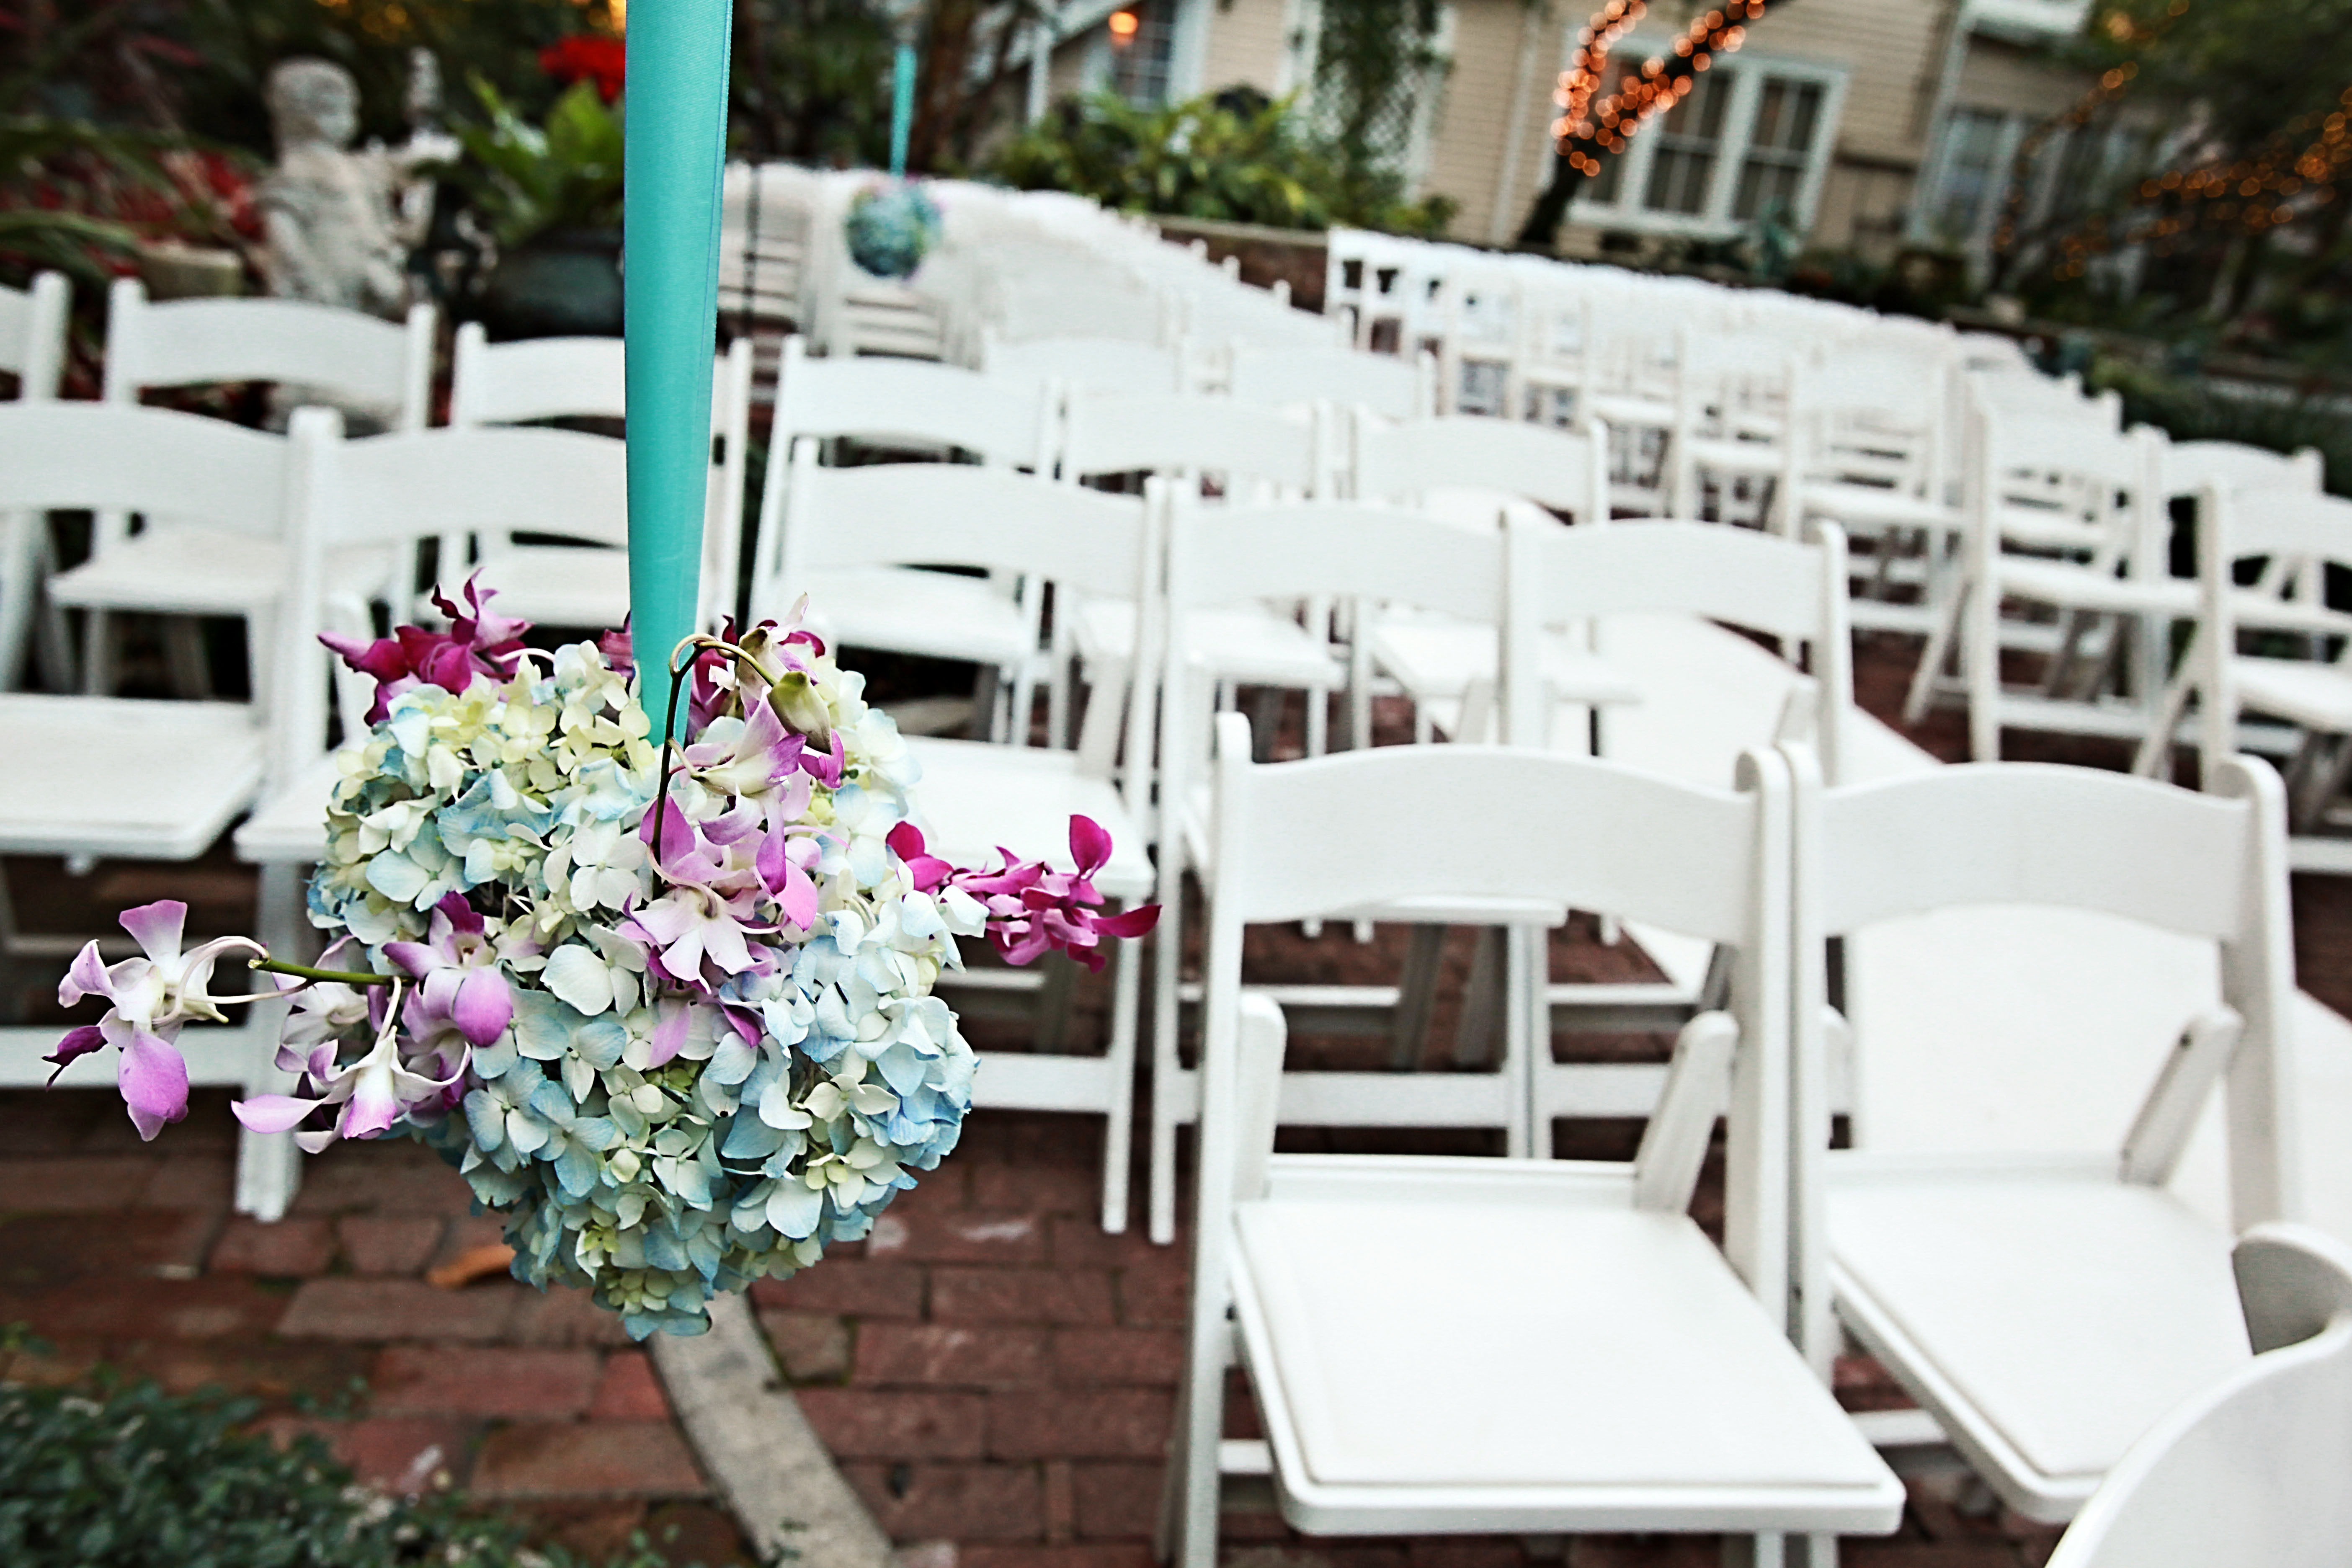 Weddings & Events in Orlando